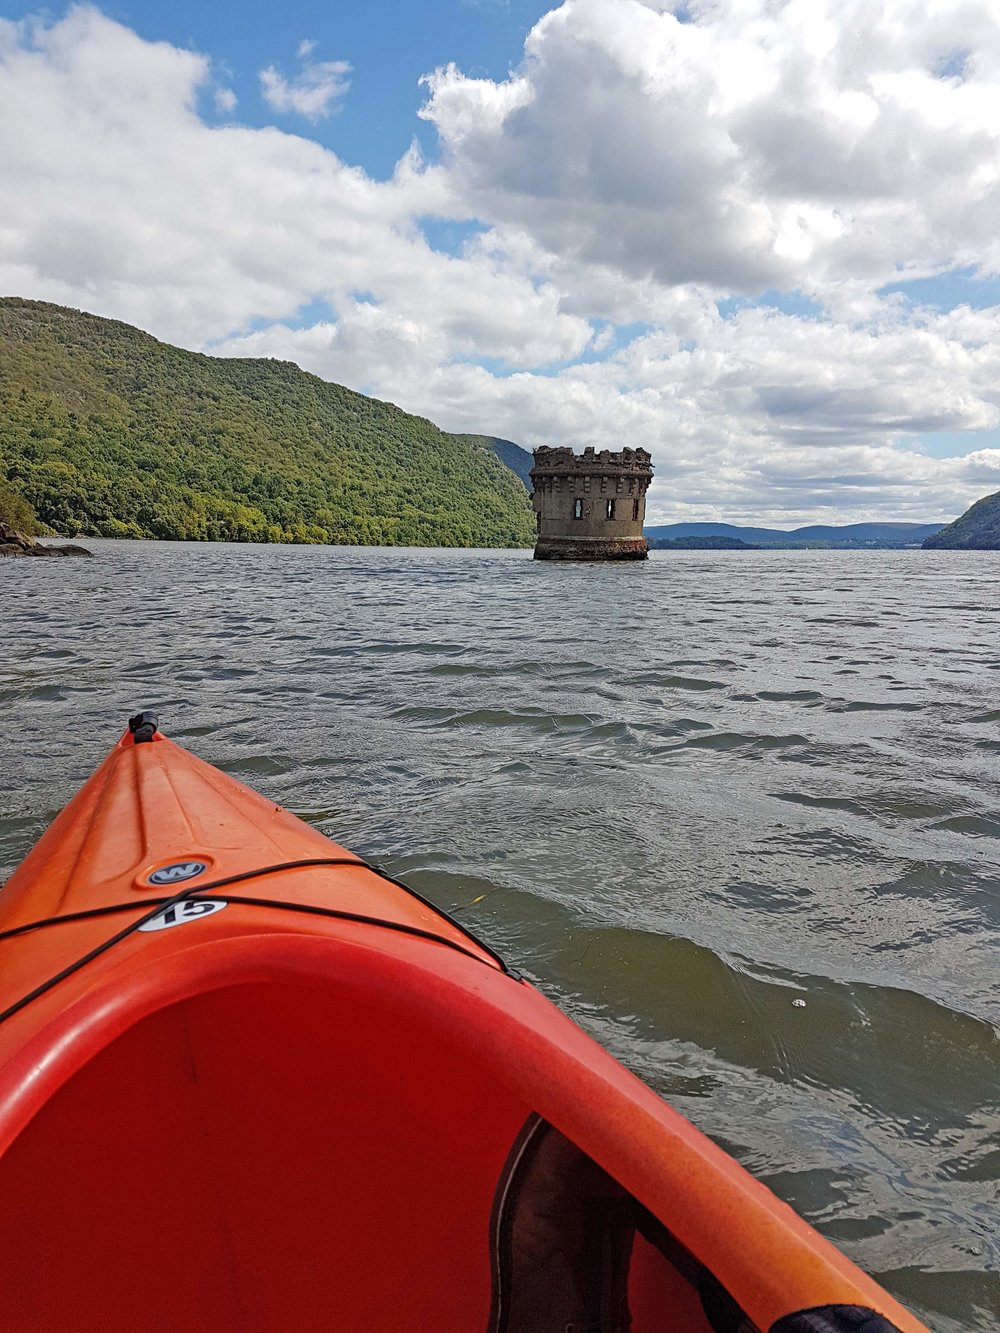 Bannerman from Kayak.jpg